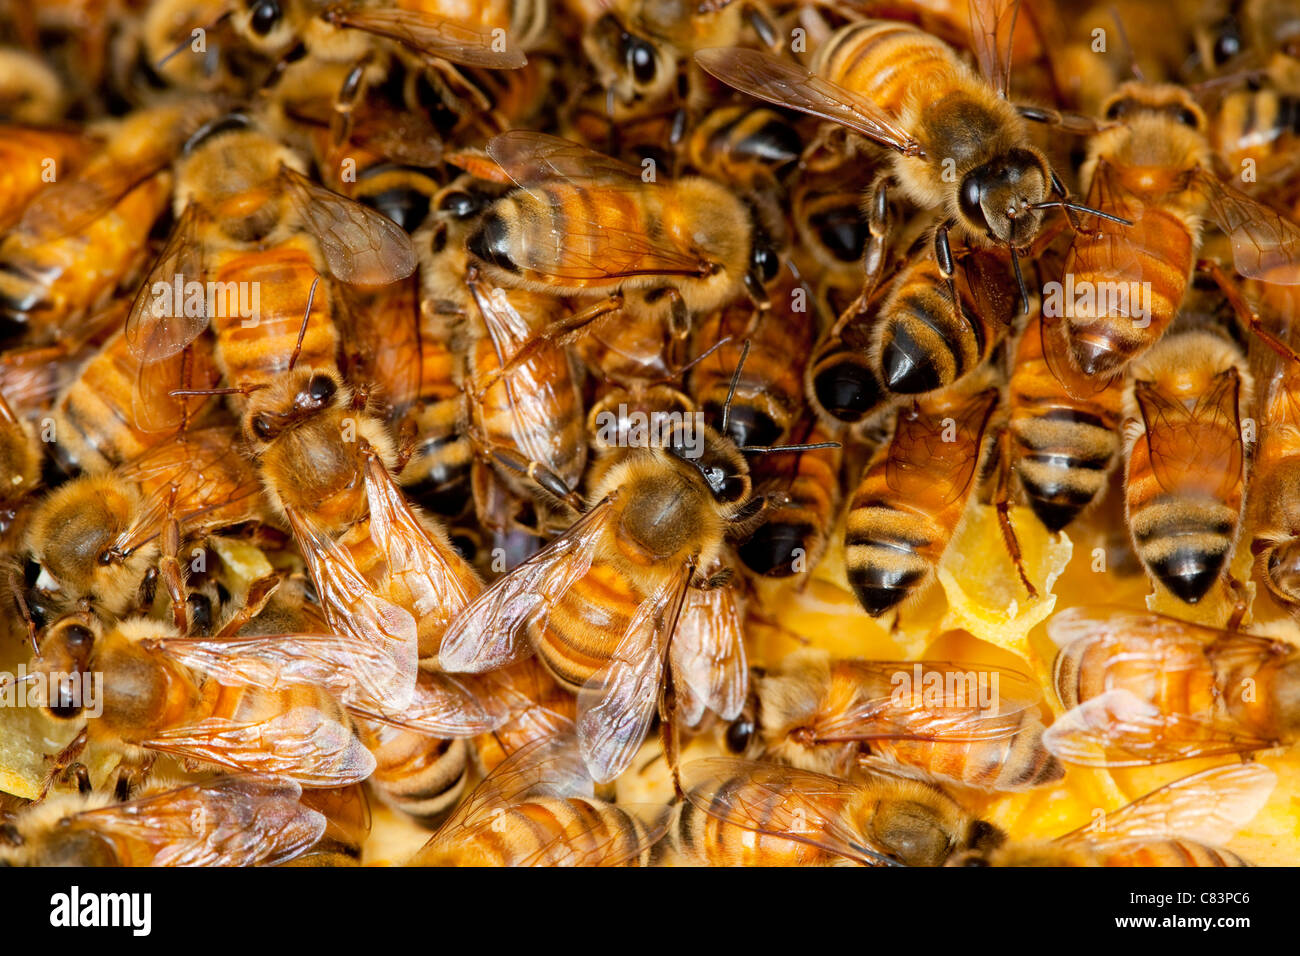 A colony of honey bees. - Stock Image